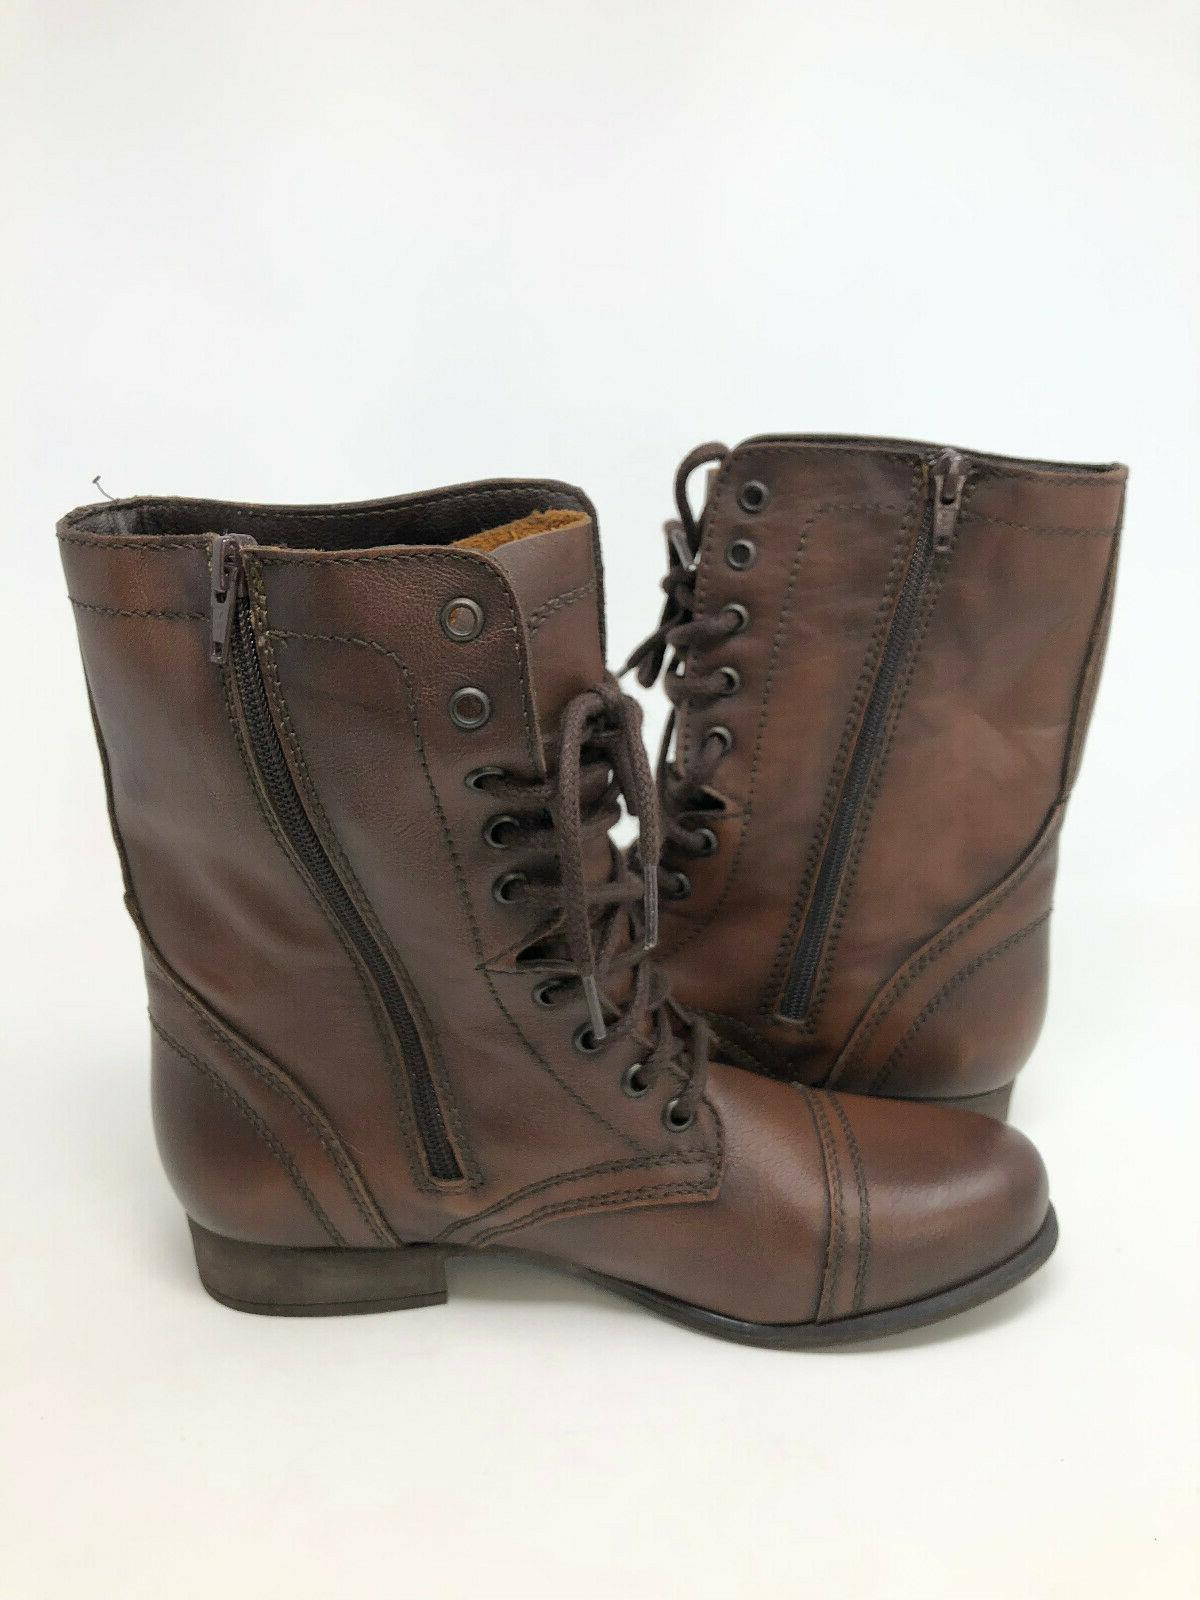 Steve Leather Boots Cap NEW